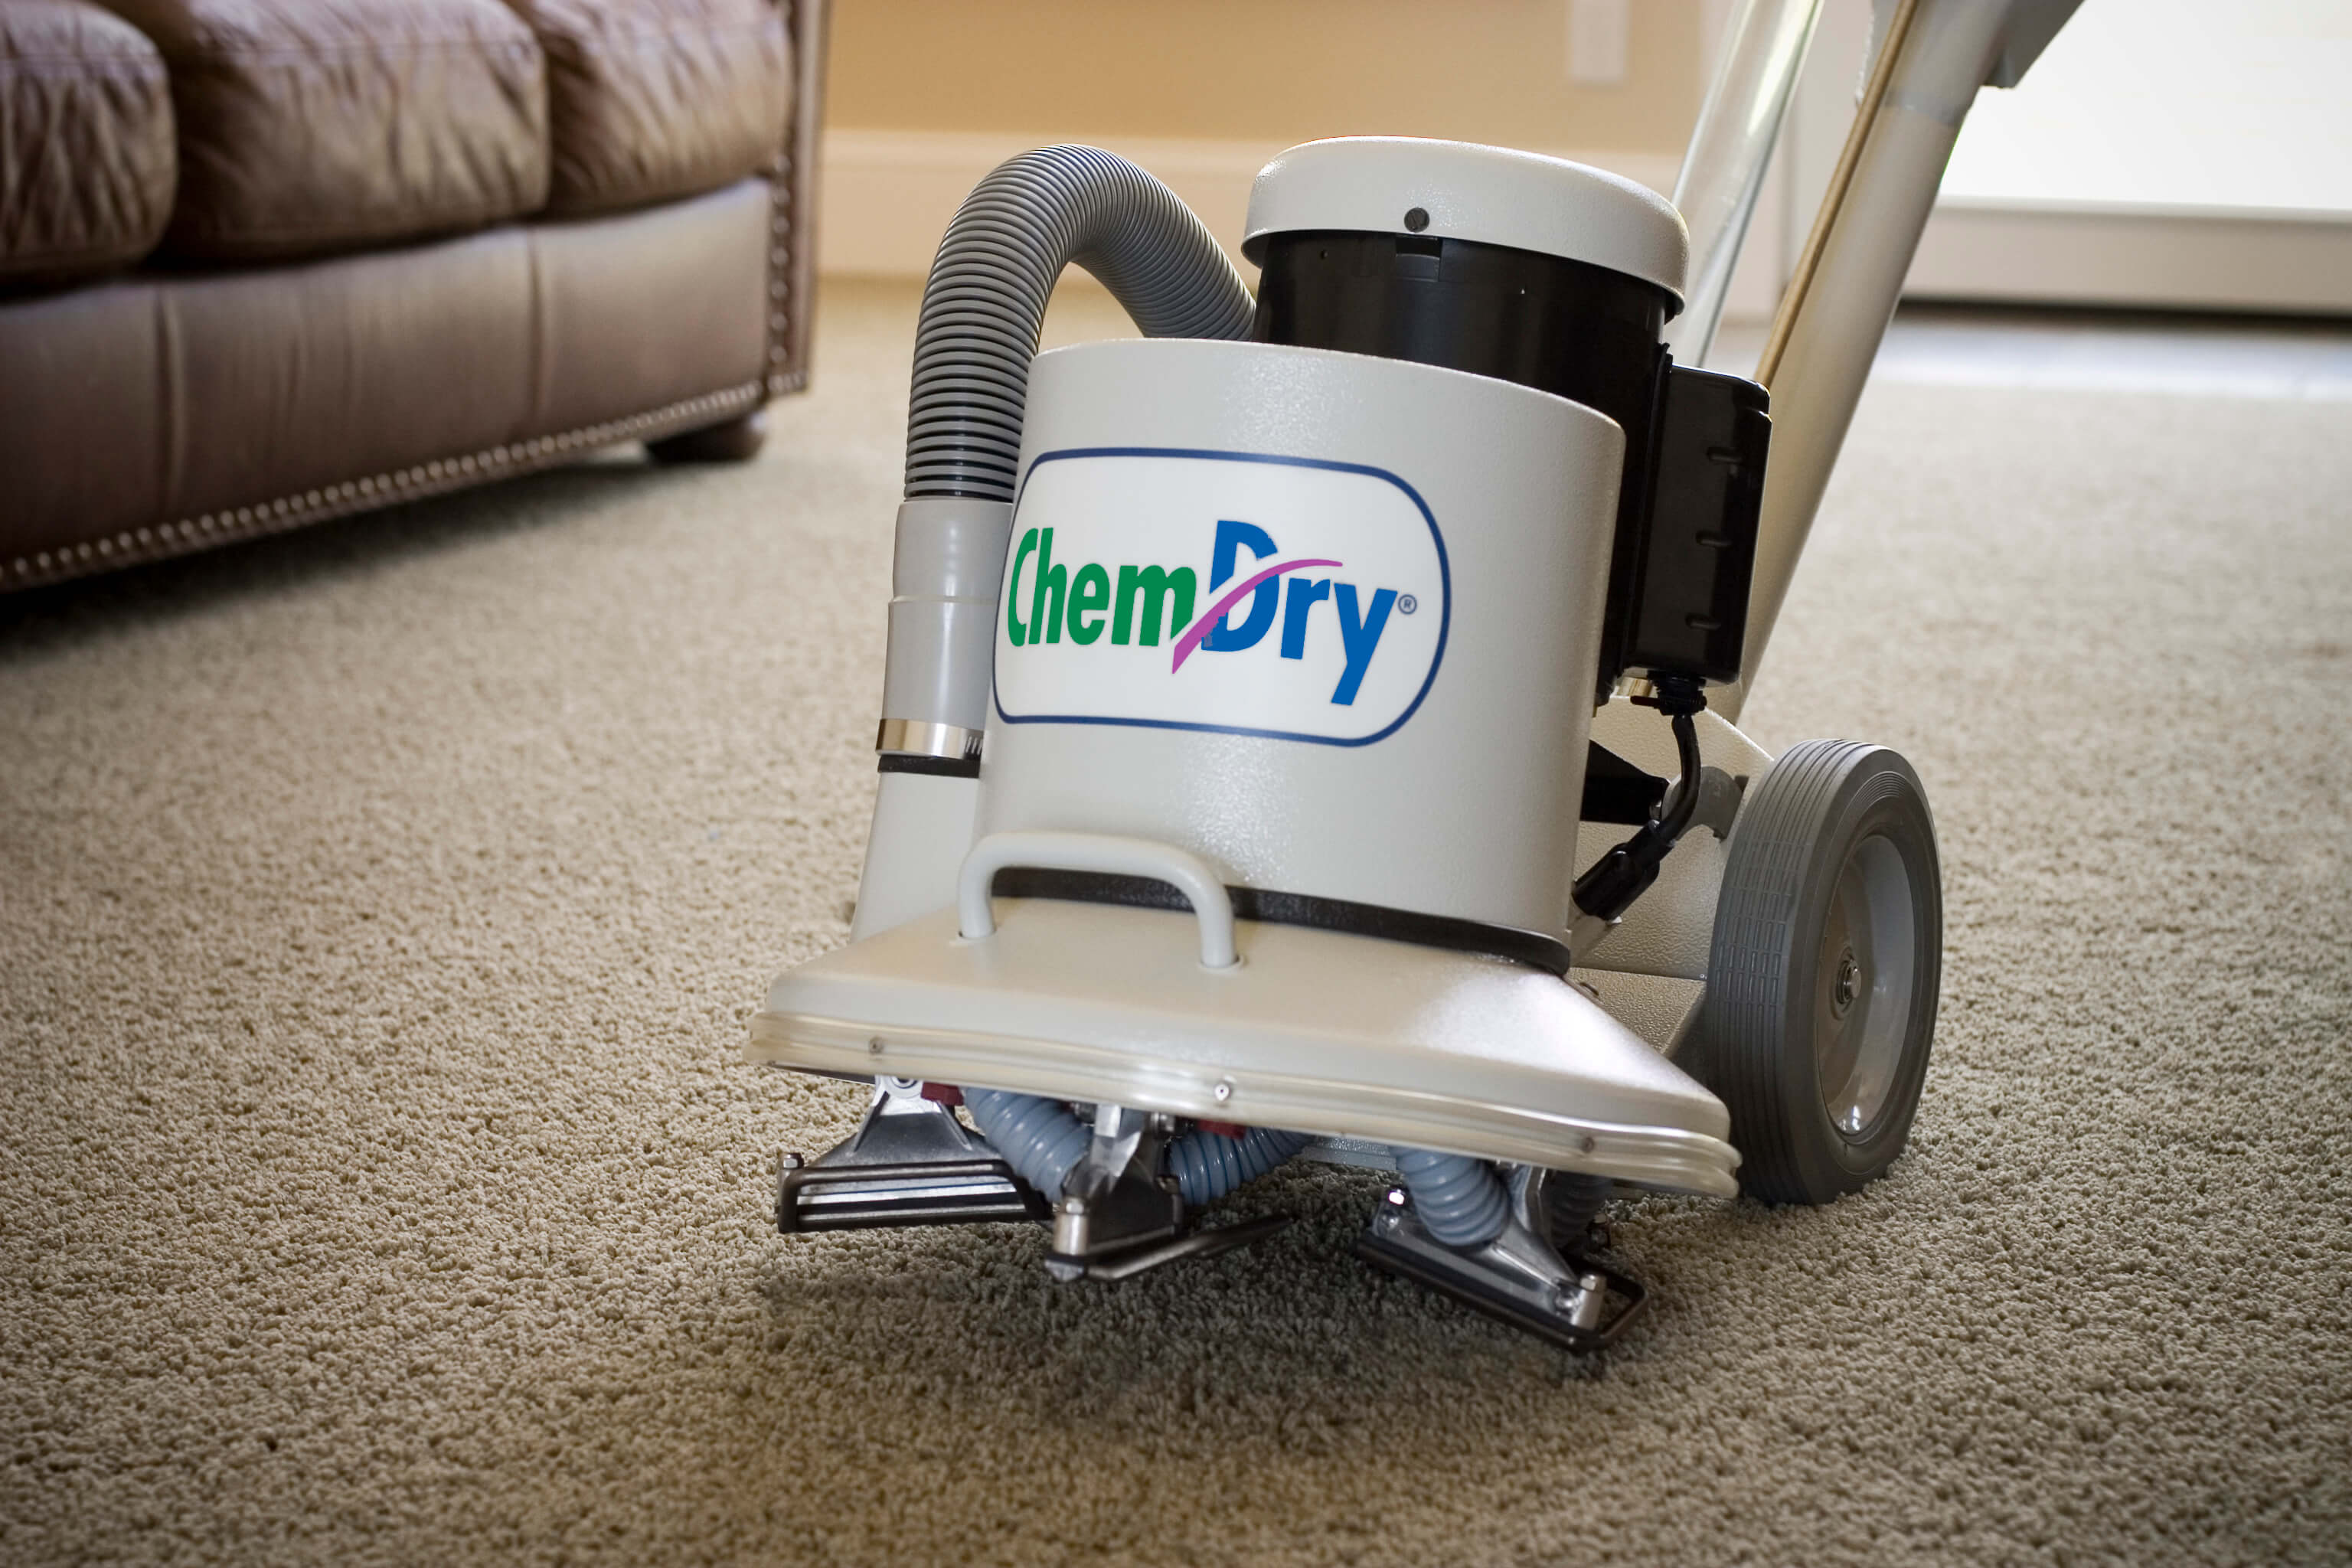 chem dry carpet cleaning sacramento